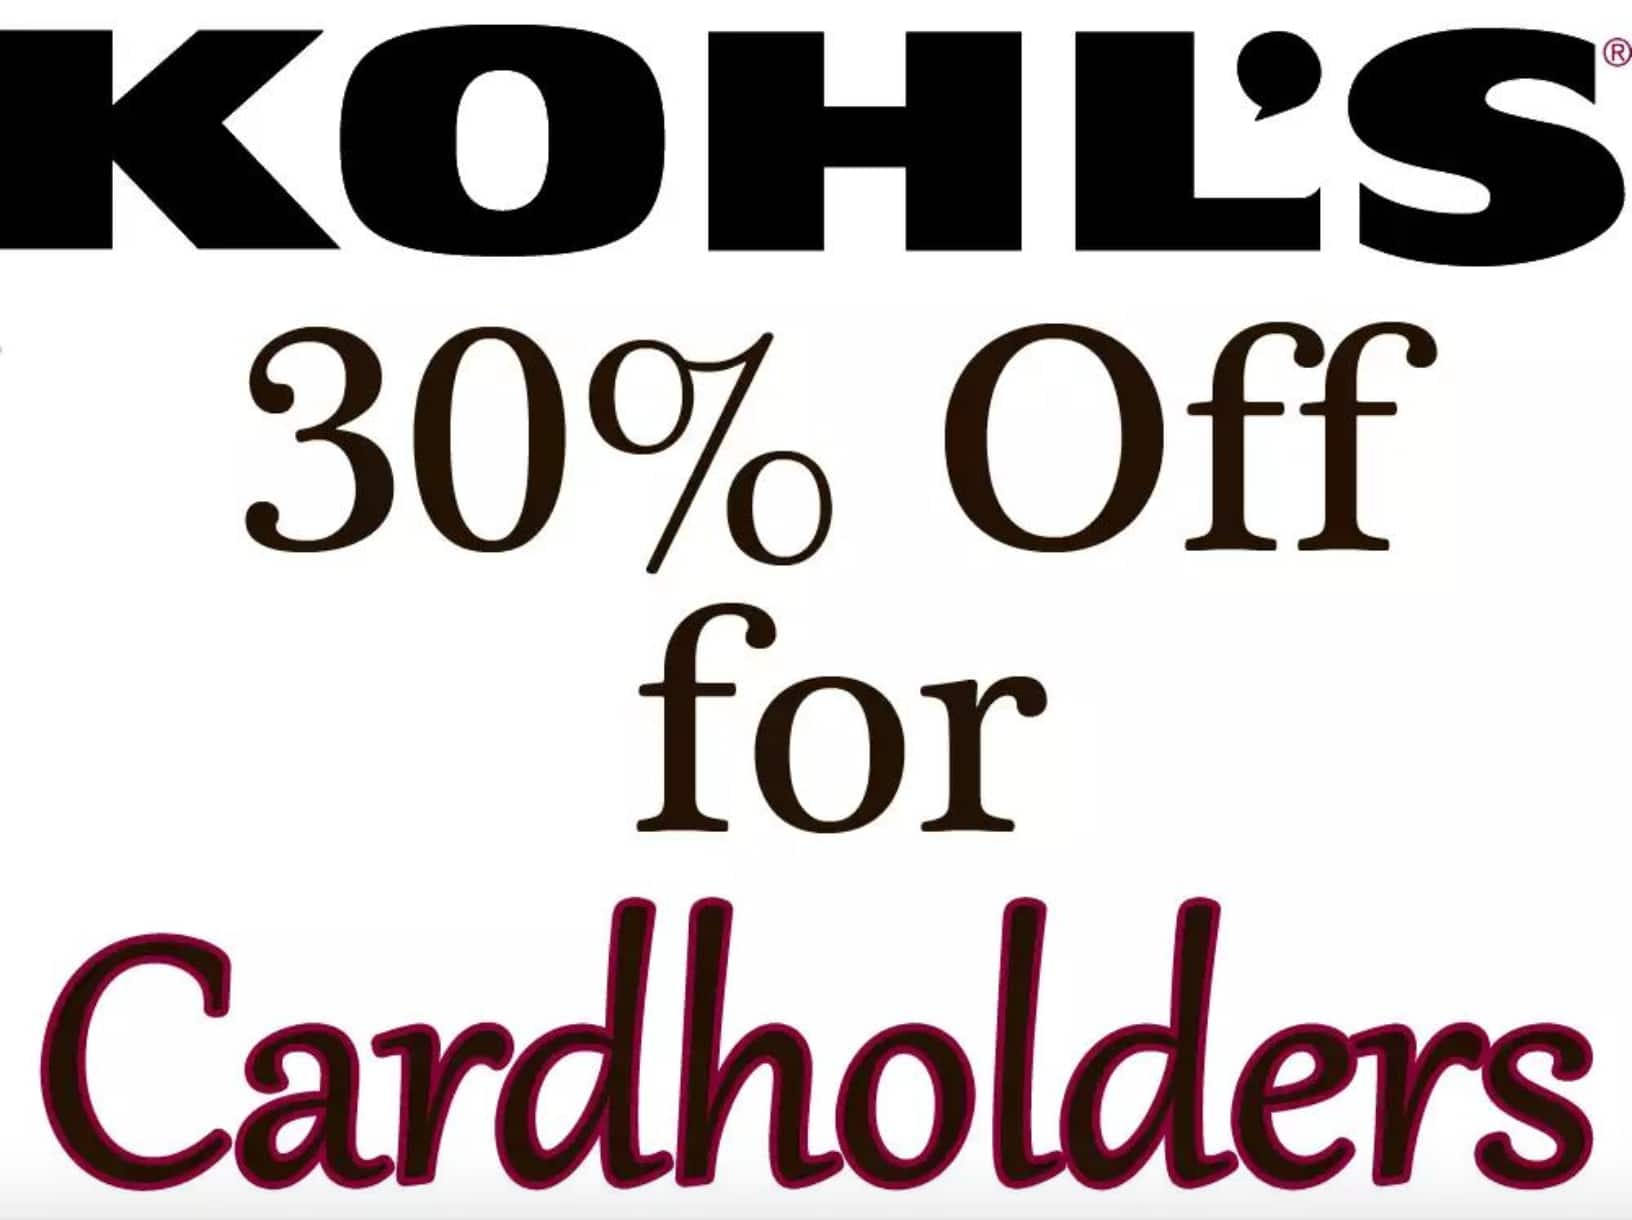 ff91d6a40a4a0 Kohl's Cardholders Coupon for Additional Savings - Slickdeals.net